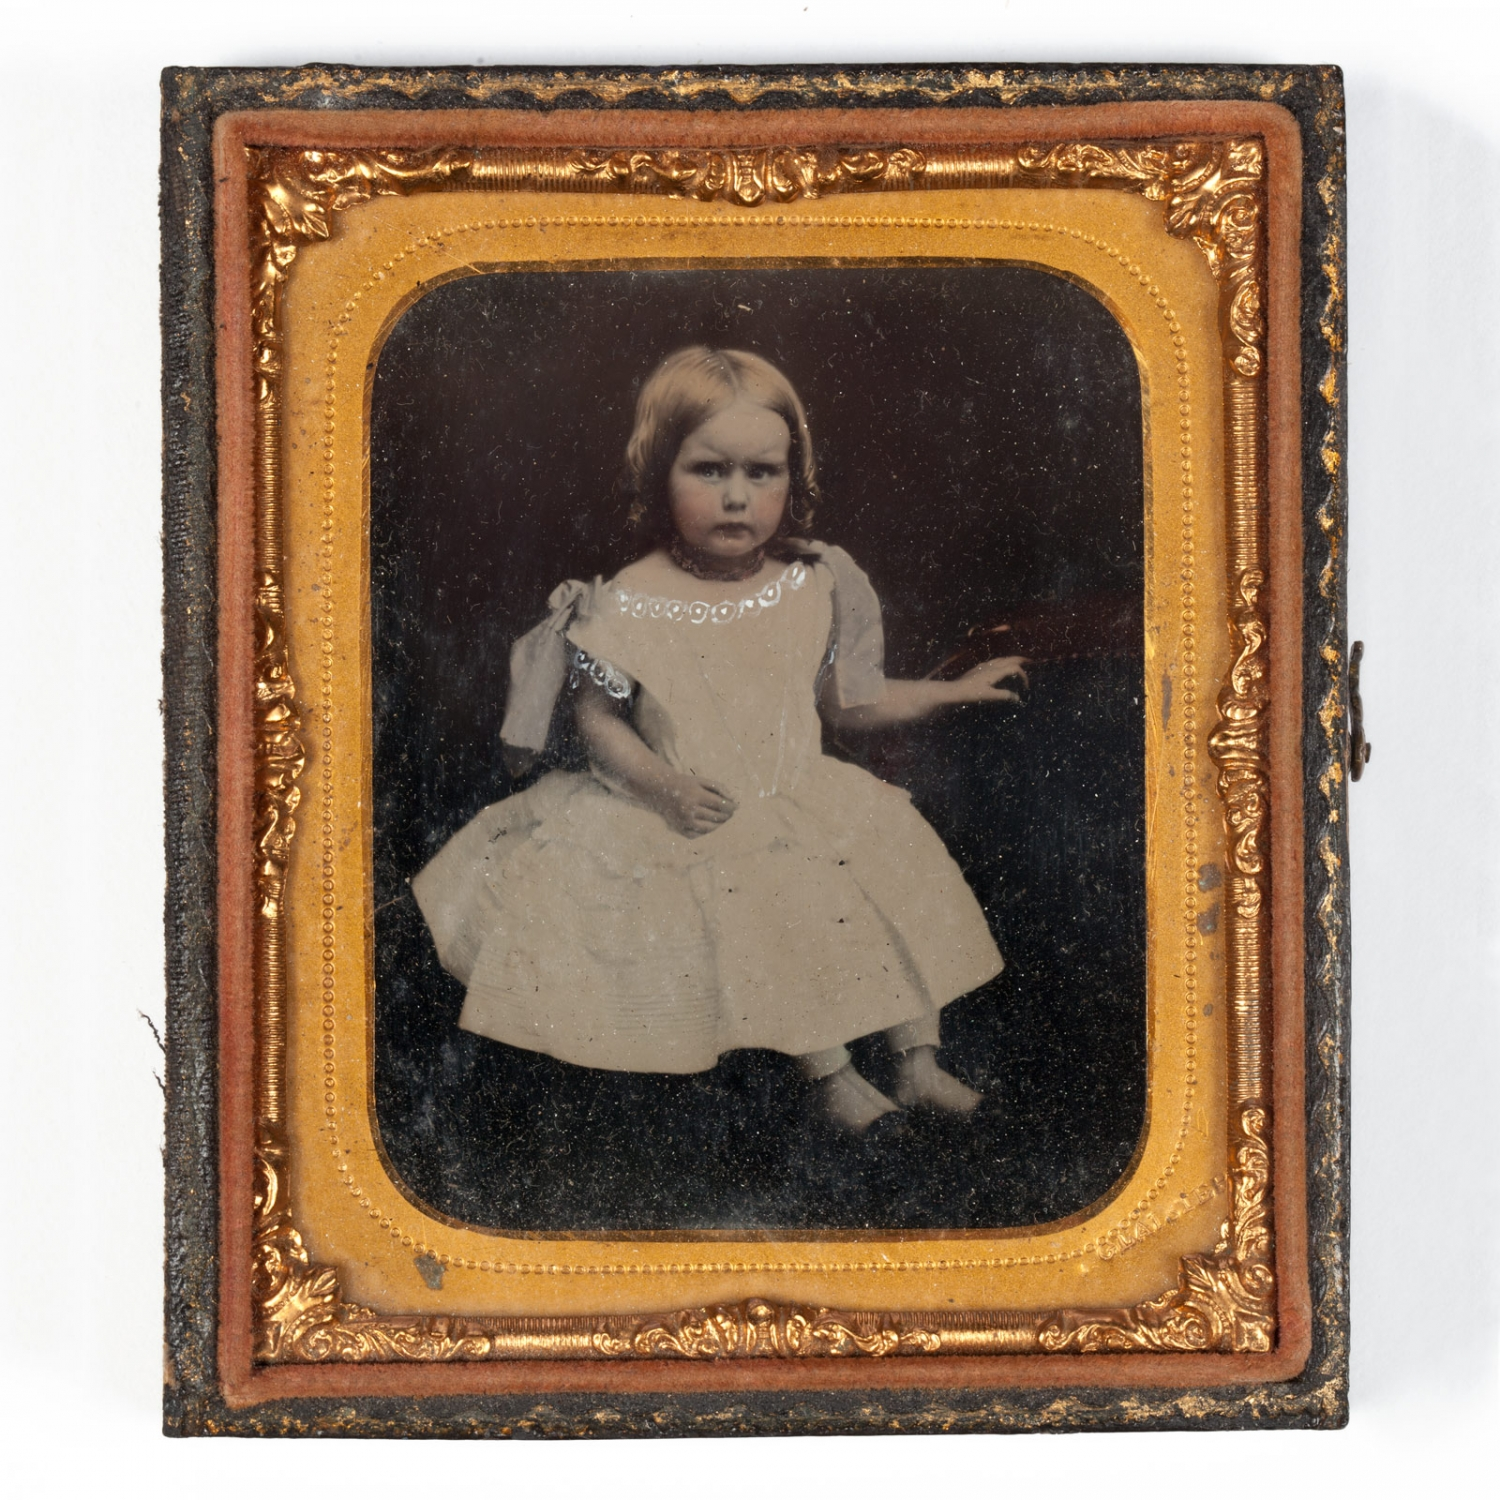 Ambrotype of a young child, around 1863